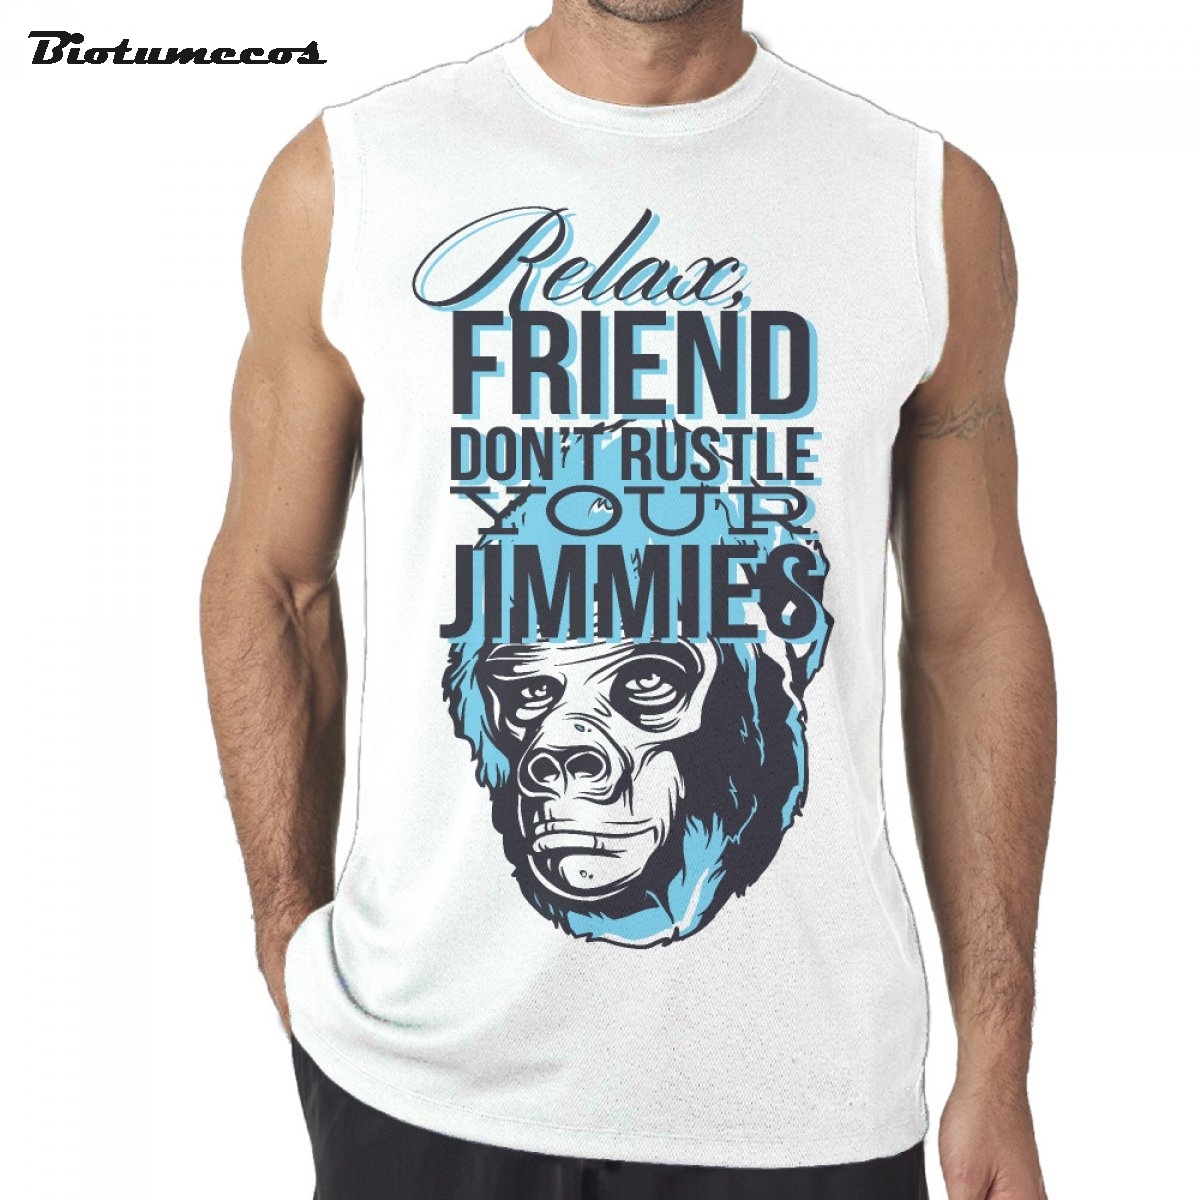 Men Tank Tops Fashion Brand Sleeveless T shirts Relax Friend Dont Rustle Your Jimmies Ap ...